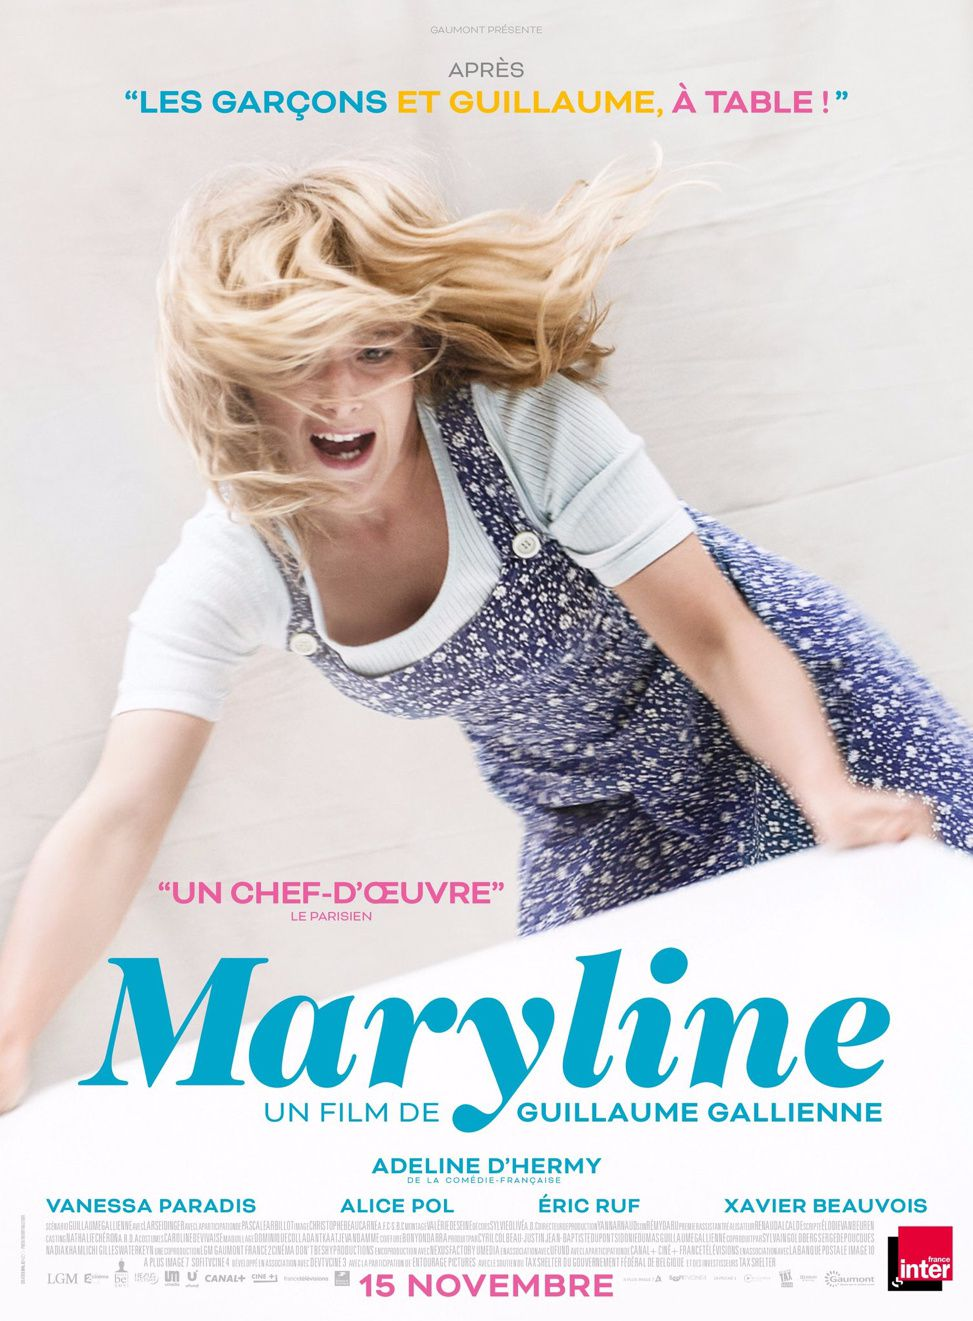 Maryline &amp&#x3B; Guillaume à table // l'affiche